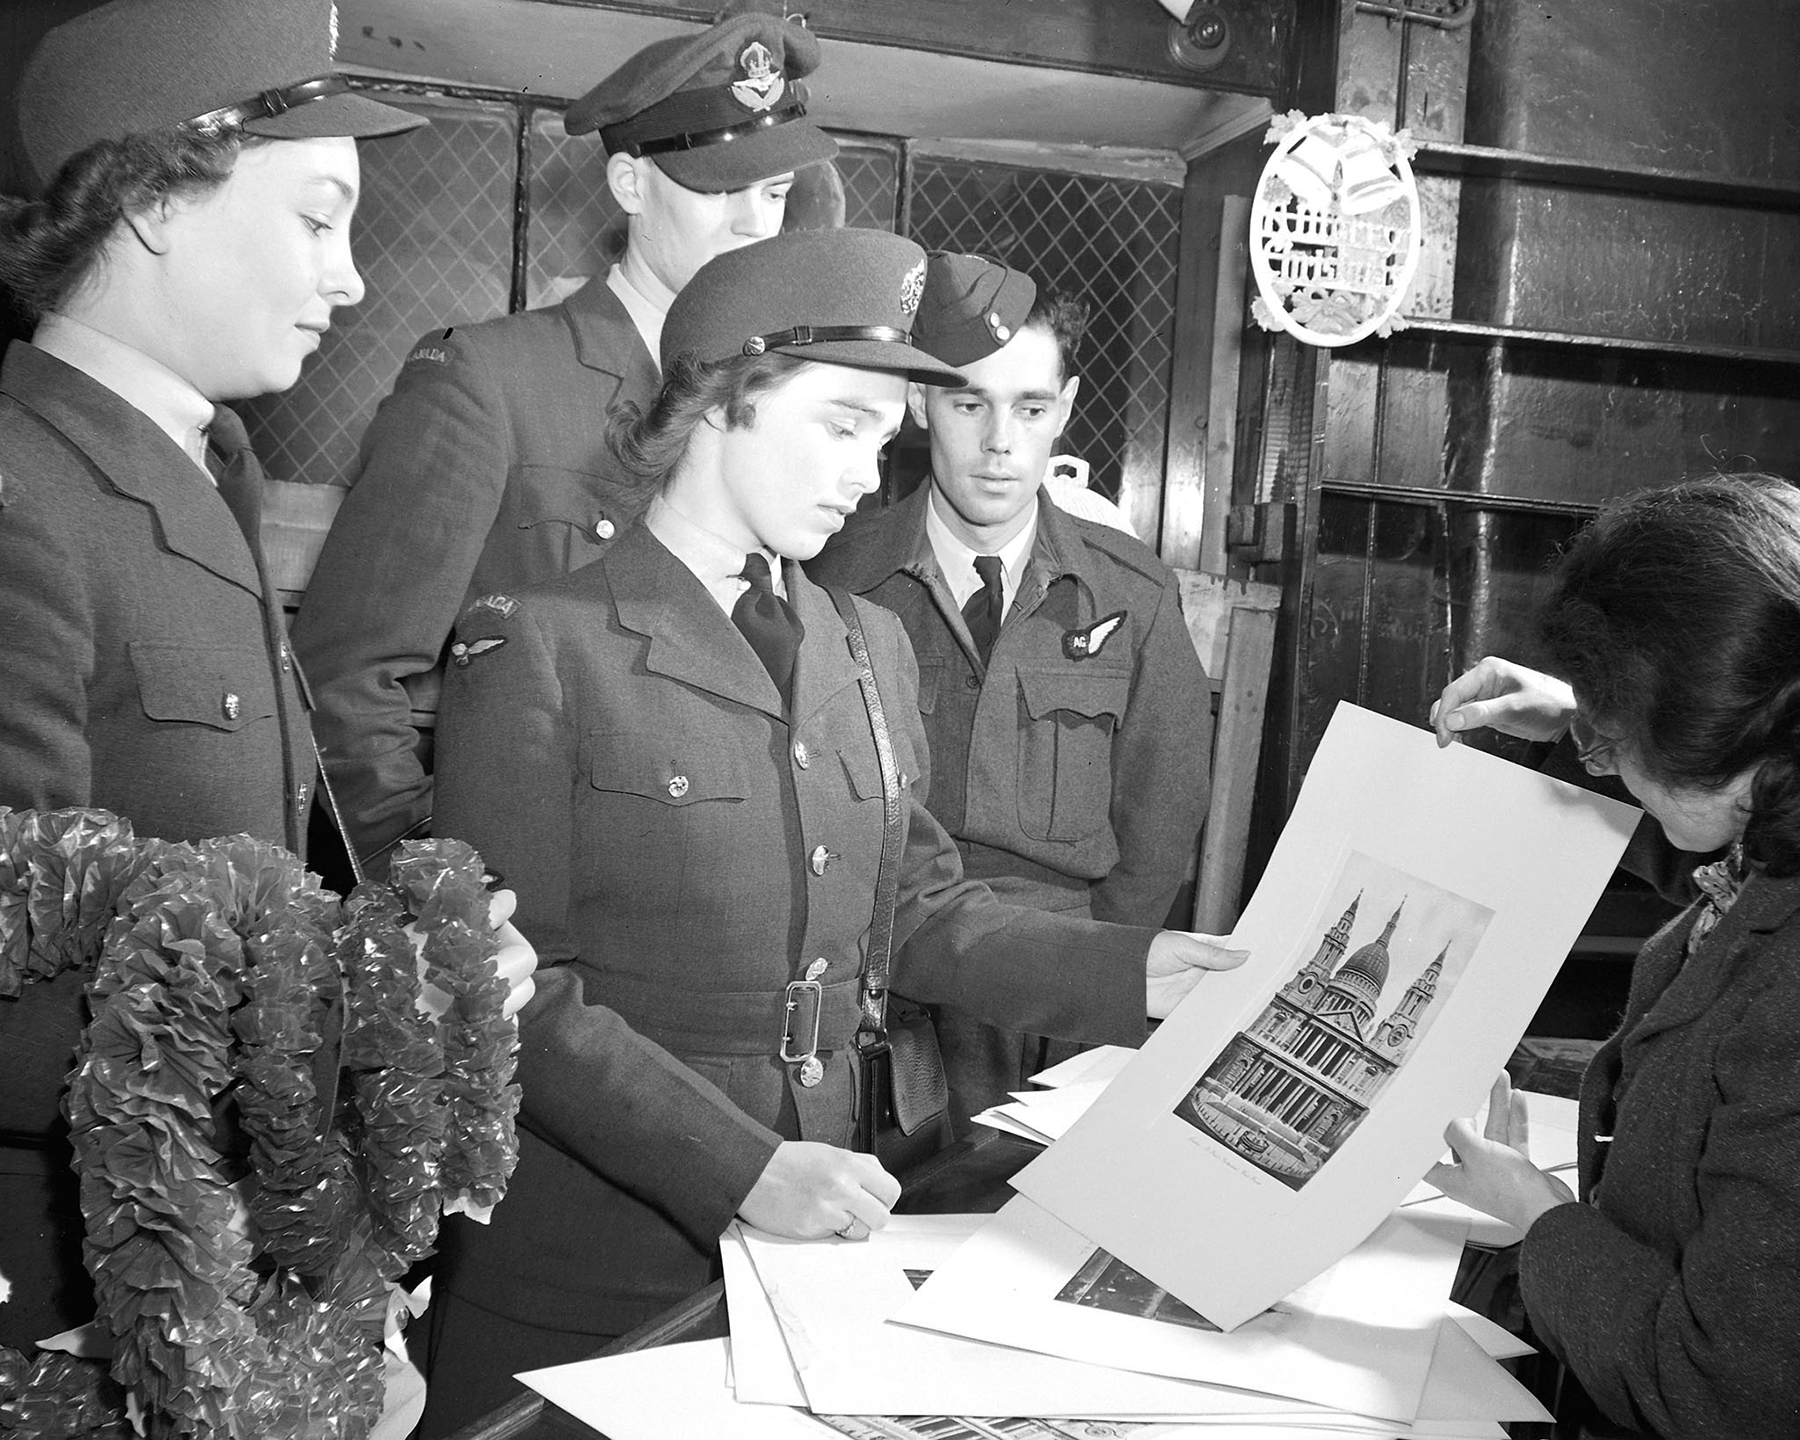 "On October 16, 1943, in the original ""Old Curiosity Shop"" of Charles Dickens' novel, Leading Aircraftwoman Shirley Stewart (left) (La Riviere, Manitoba) and Leading Aircraftwoman Geraldine Reid (Minnedosa, Manitoba), members of the Royal Canadian Air Force Women's Division Overseas, and Royal Canadian Air Force members Pilot Officer Thomas Teasdale (centre) (Edmonton, Alberta) and Warrant Officer Jack Lineham (Calgary, Alberta) select gifts to send back home for Christmas. PHOTO: DND Archives"